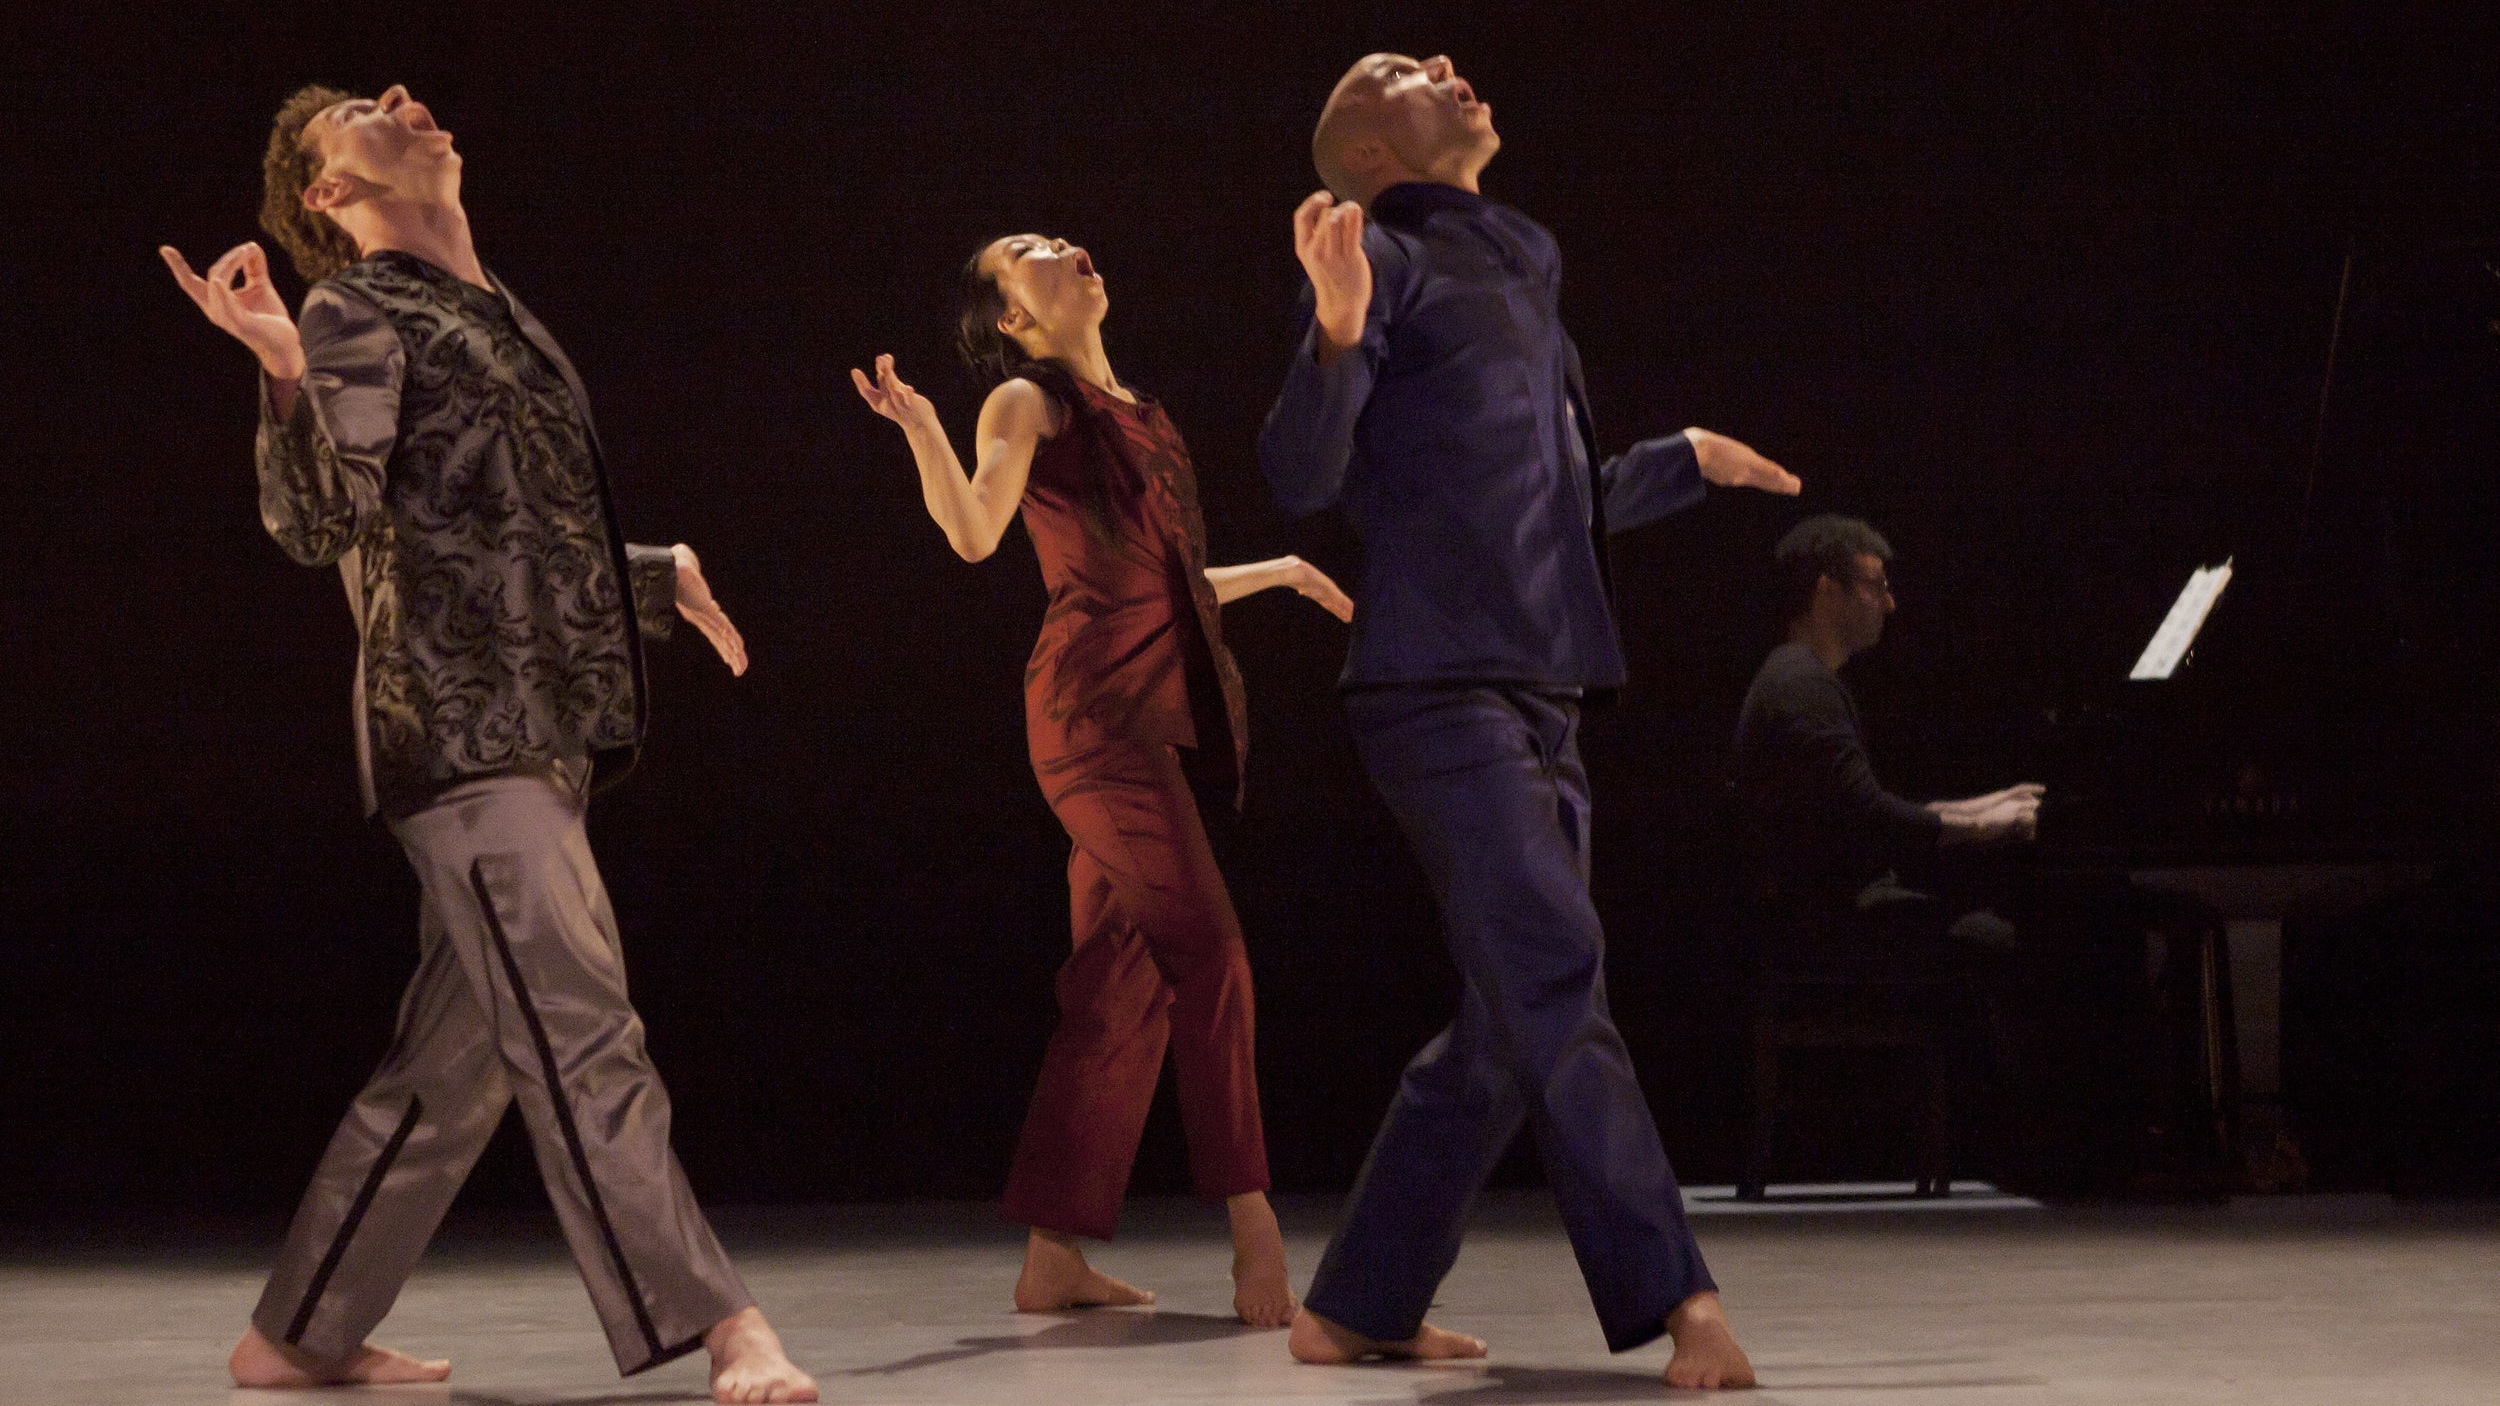 Piano/Quartet - Piano/Quartet sets four superb dancers in motion, translating – as choreography – a series of striking and complex poems by John Cage, based on quotations by the painter Jasper Johns.Presenters with a password may view the full length video here.